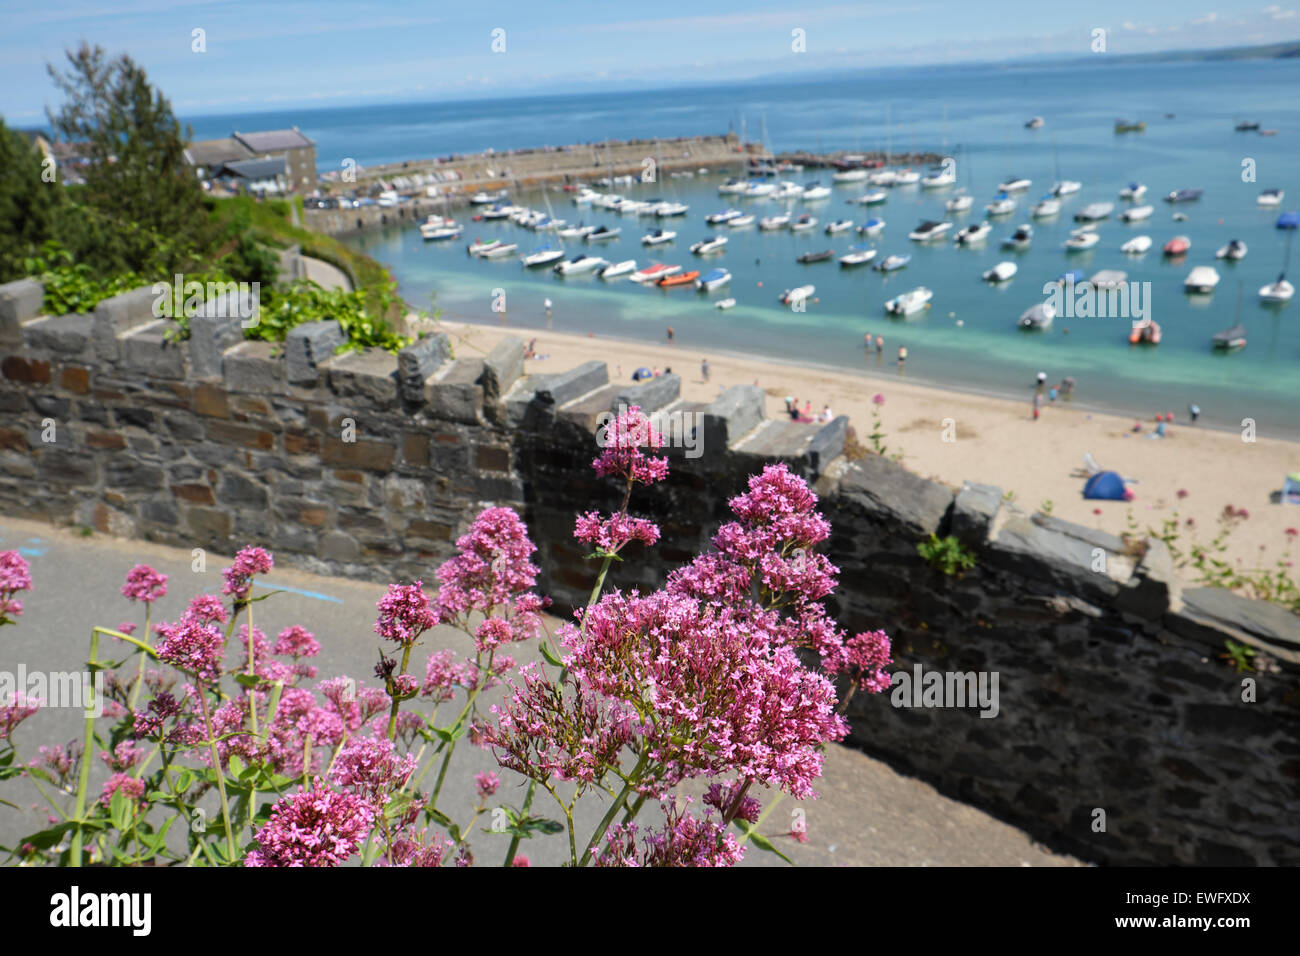 A view of boats in the harbor, beach and pink verbascum flowers by stone wall New Quay, Ceredigion Wales UK  KATHY - Stock Image